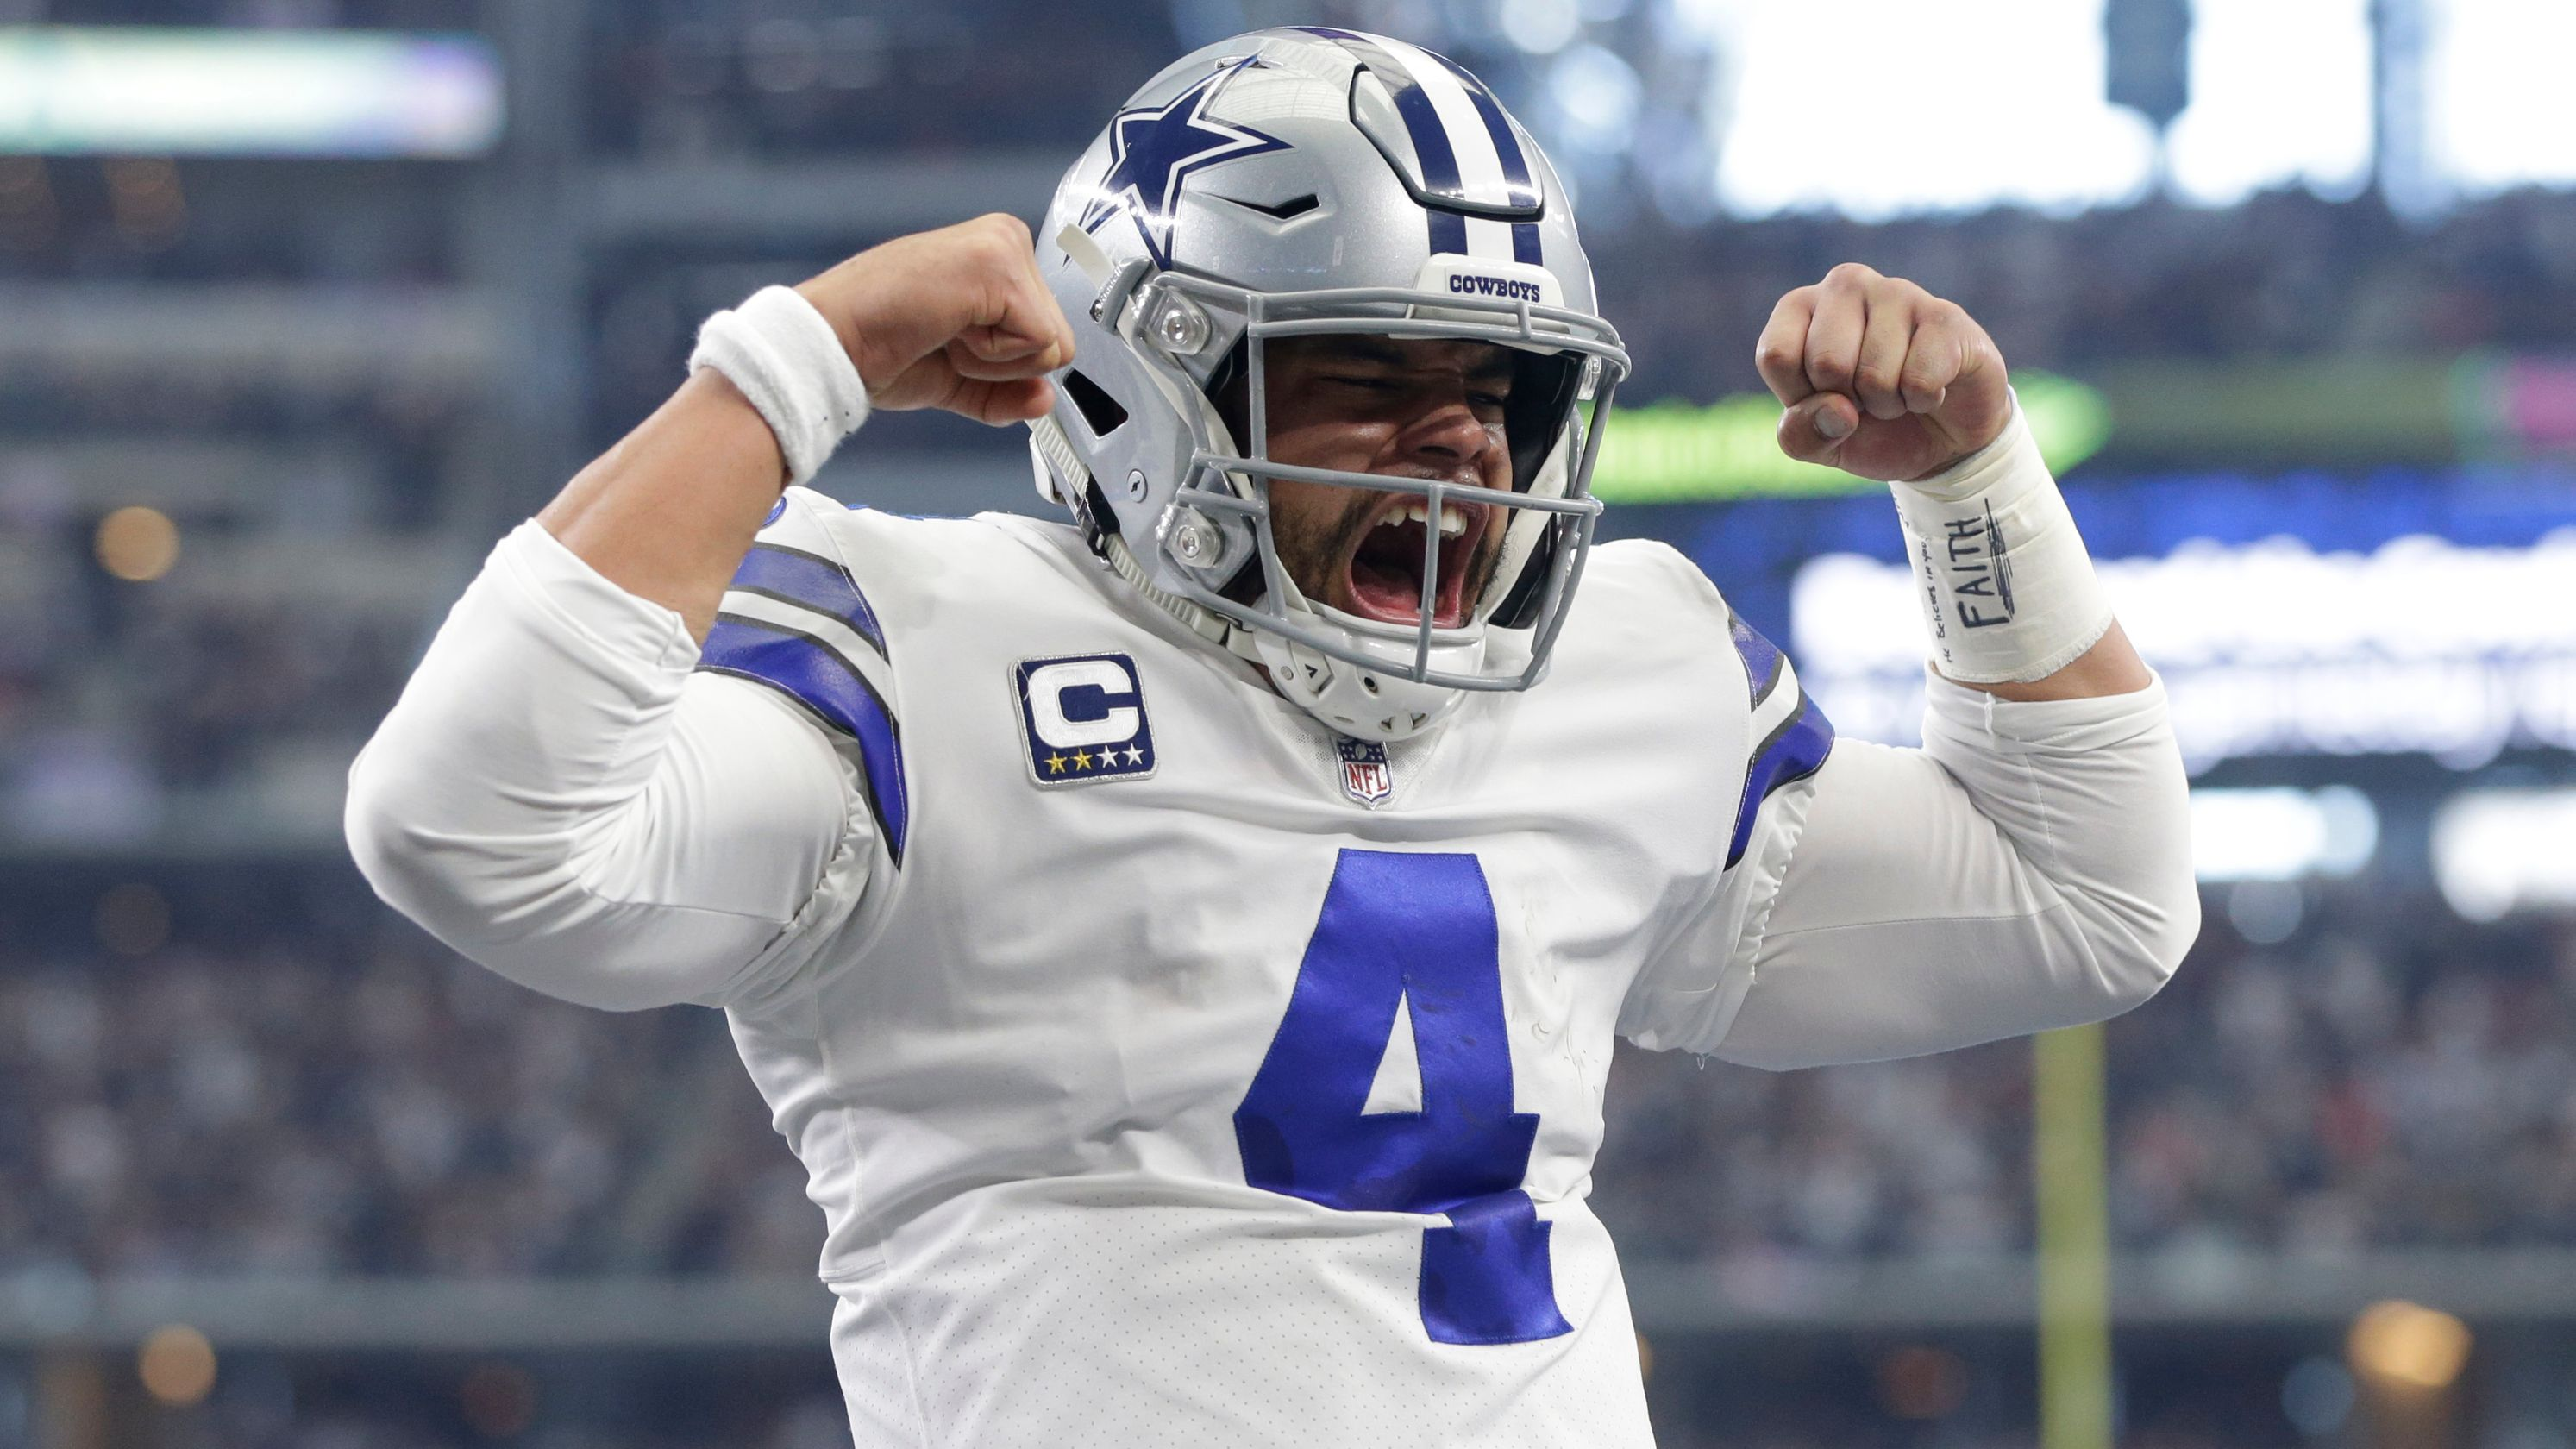 Cowboys clinch NFC East title with win over Buccaneers